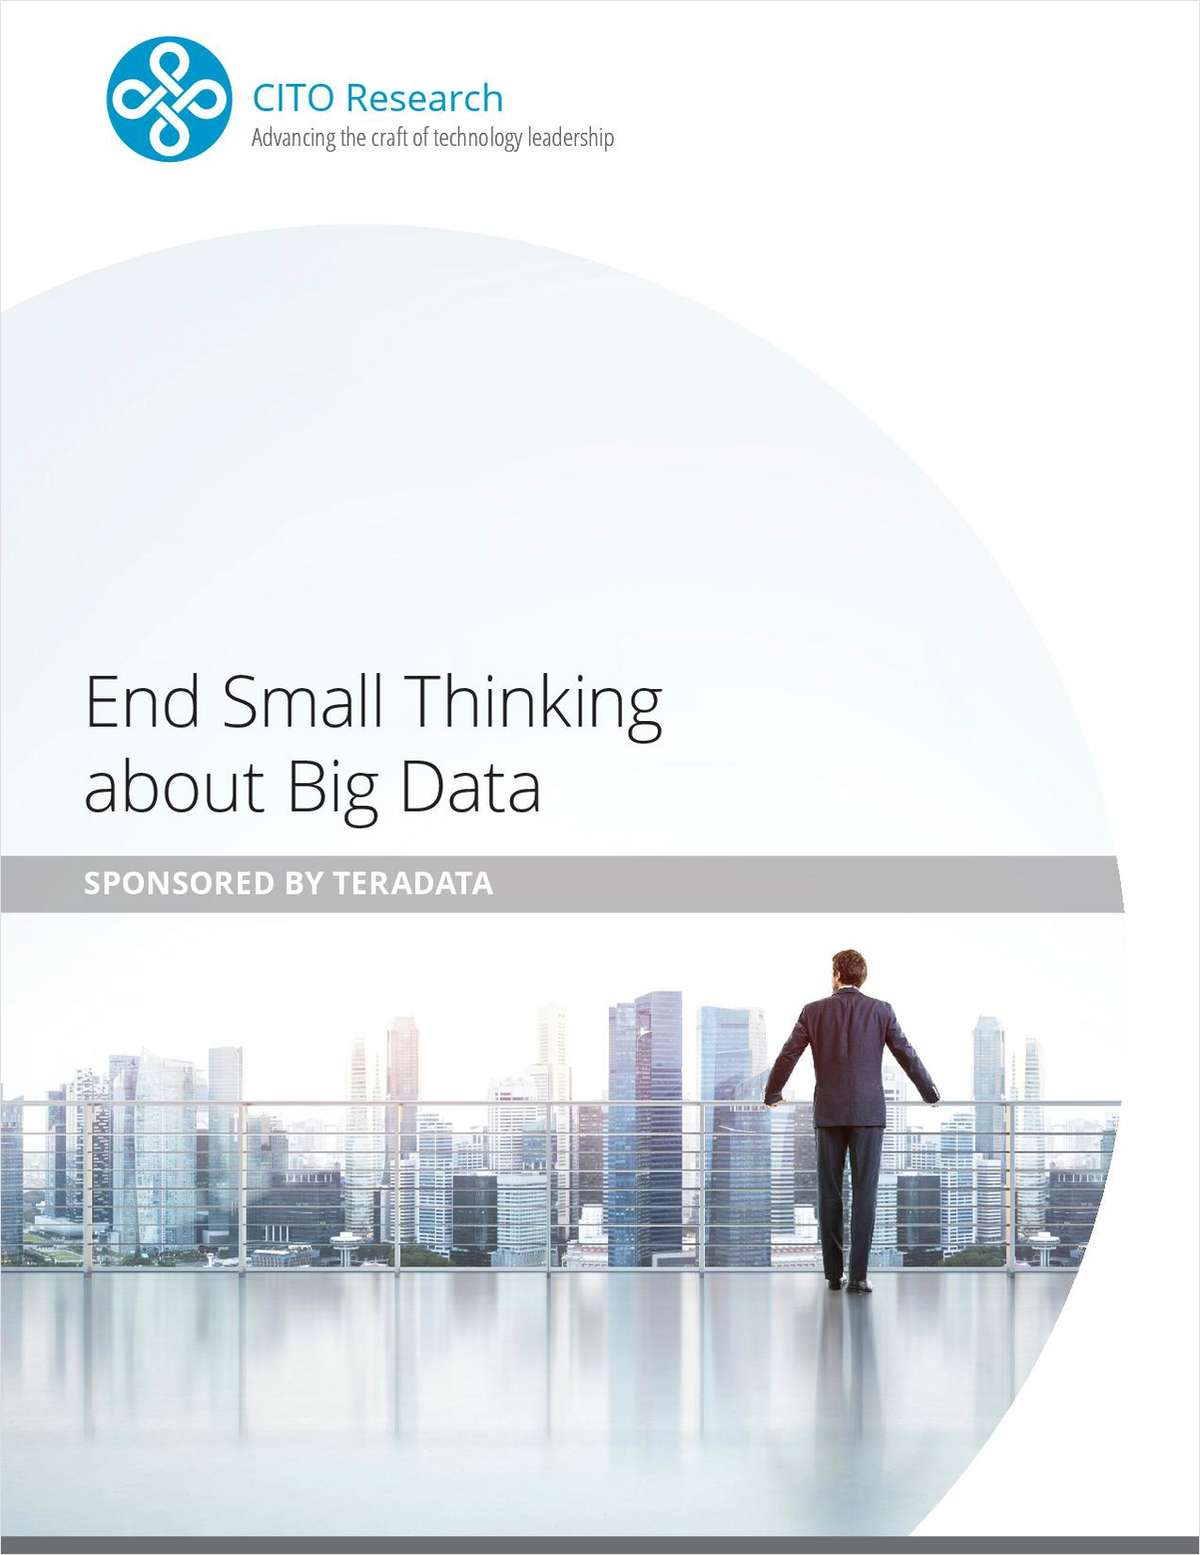 Executive Brief: Stop Thinking Small about Big Data